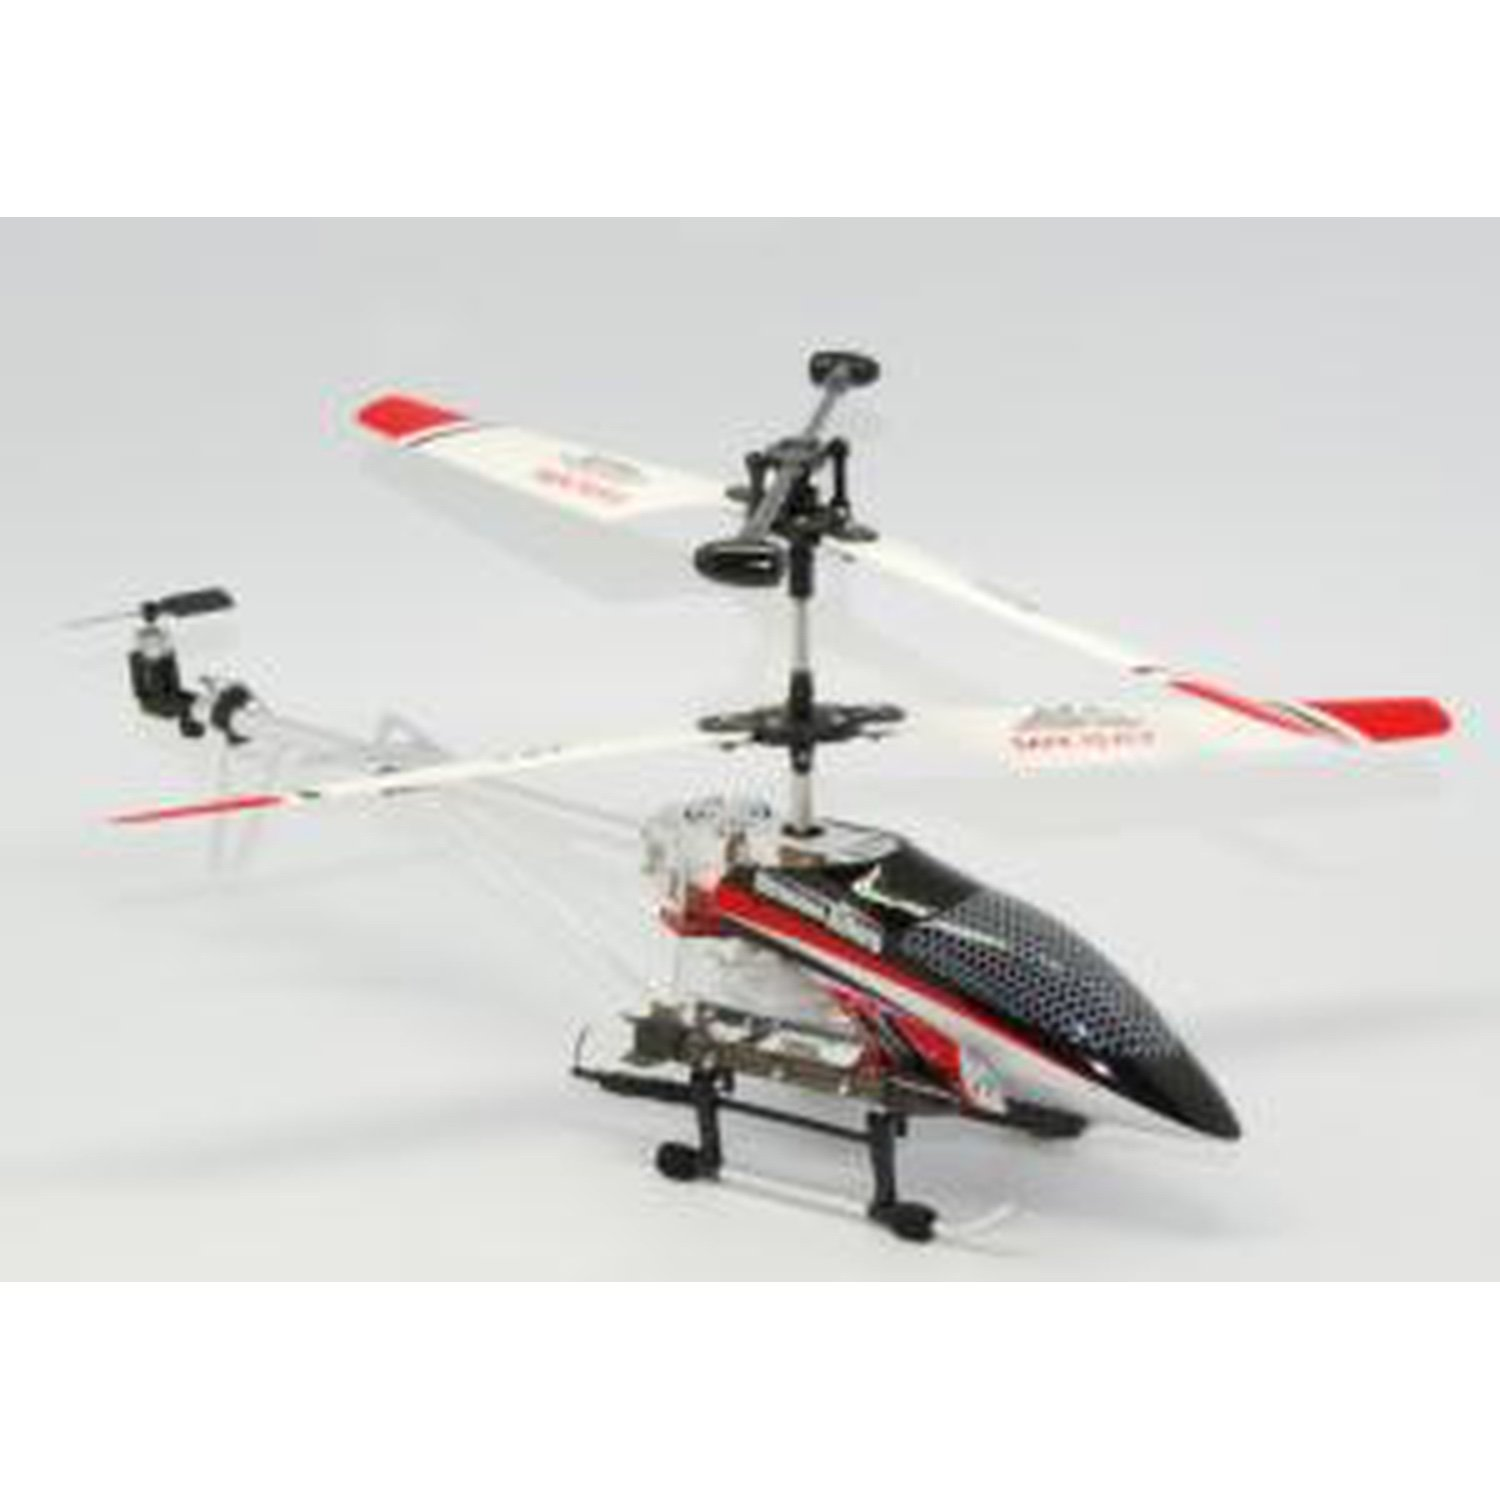 RC HELICOPTER MODEL 6809 (NETWORK)